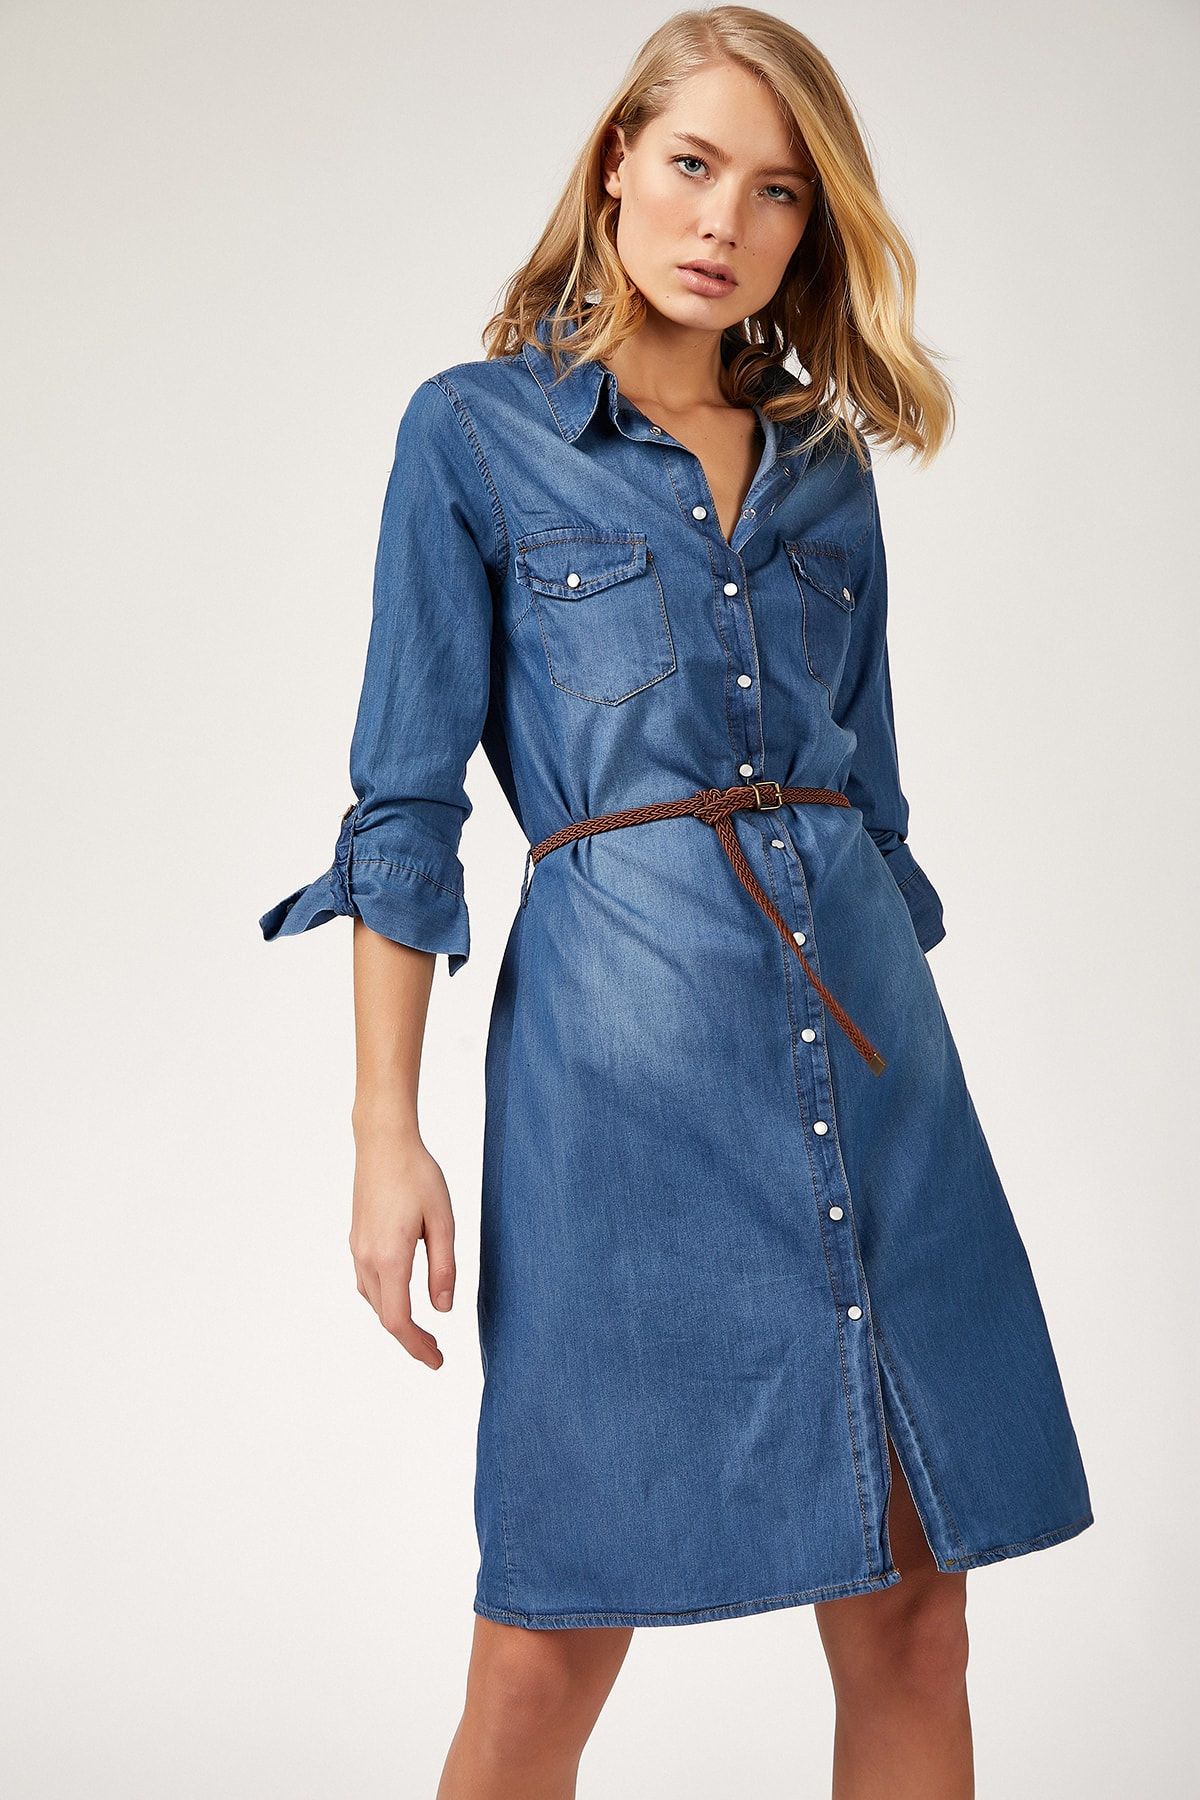 Happiness Ist. Women's Medium Blue Belt Denim Dress CX00004